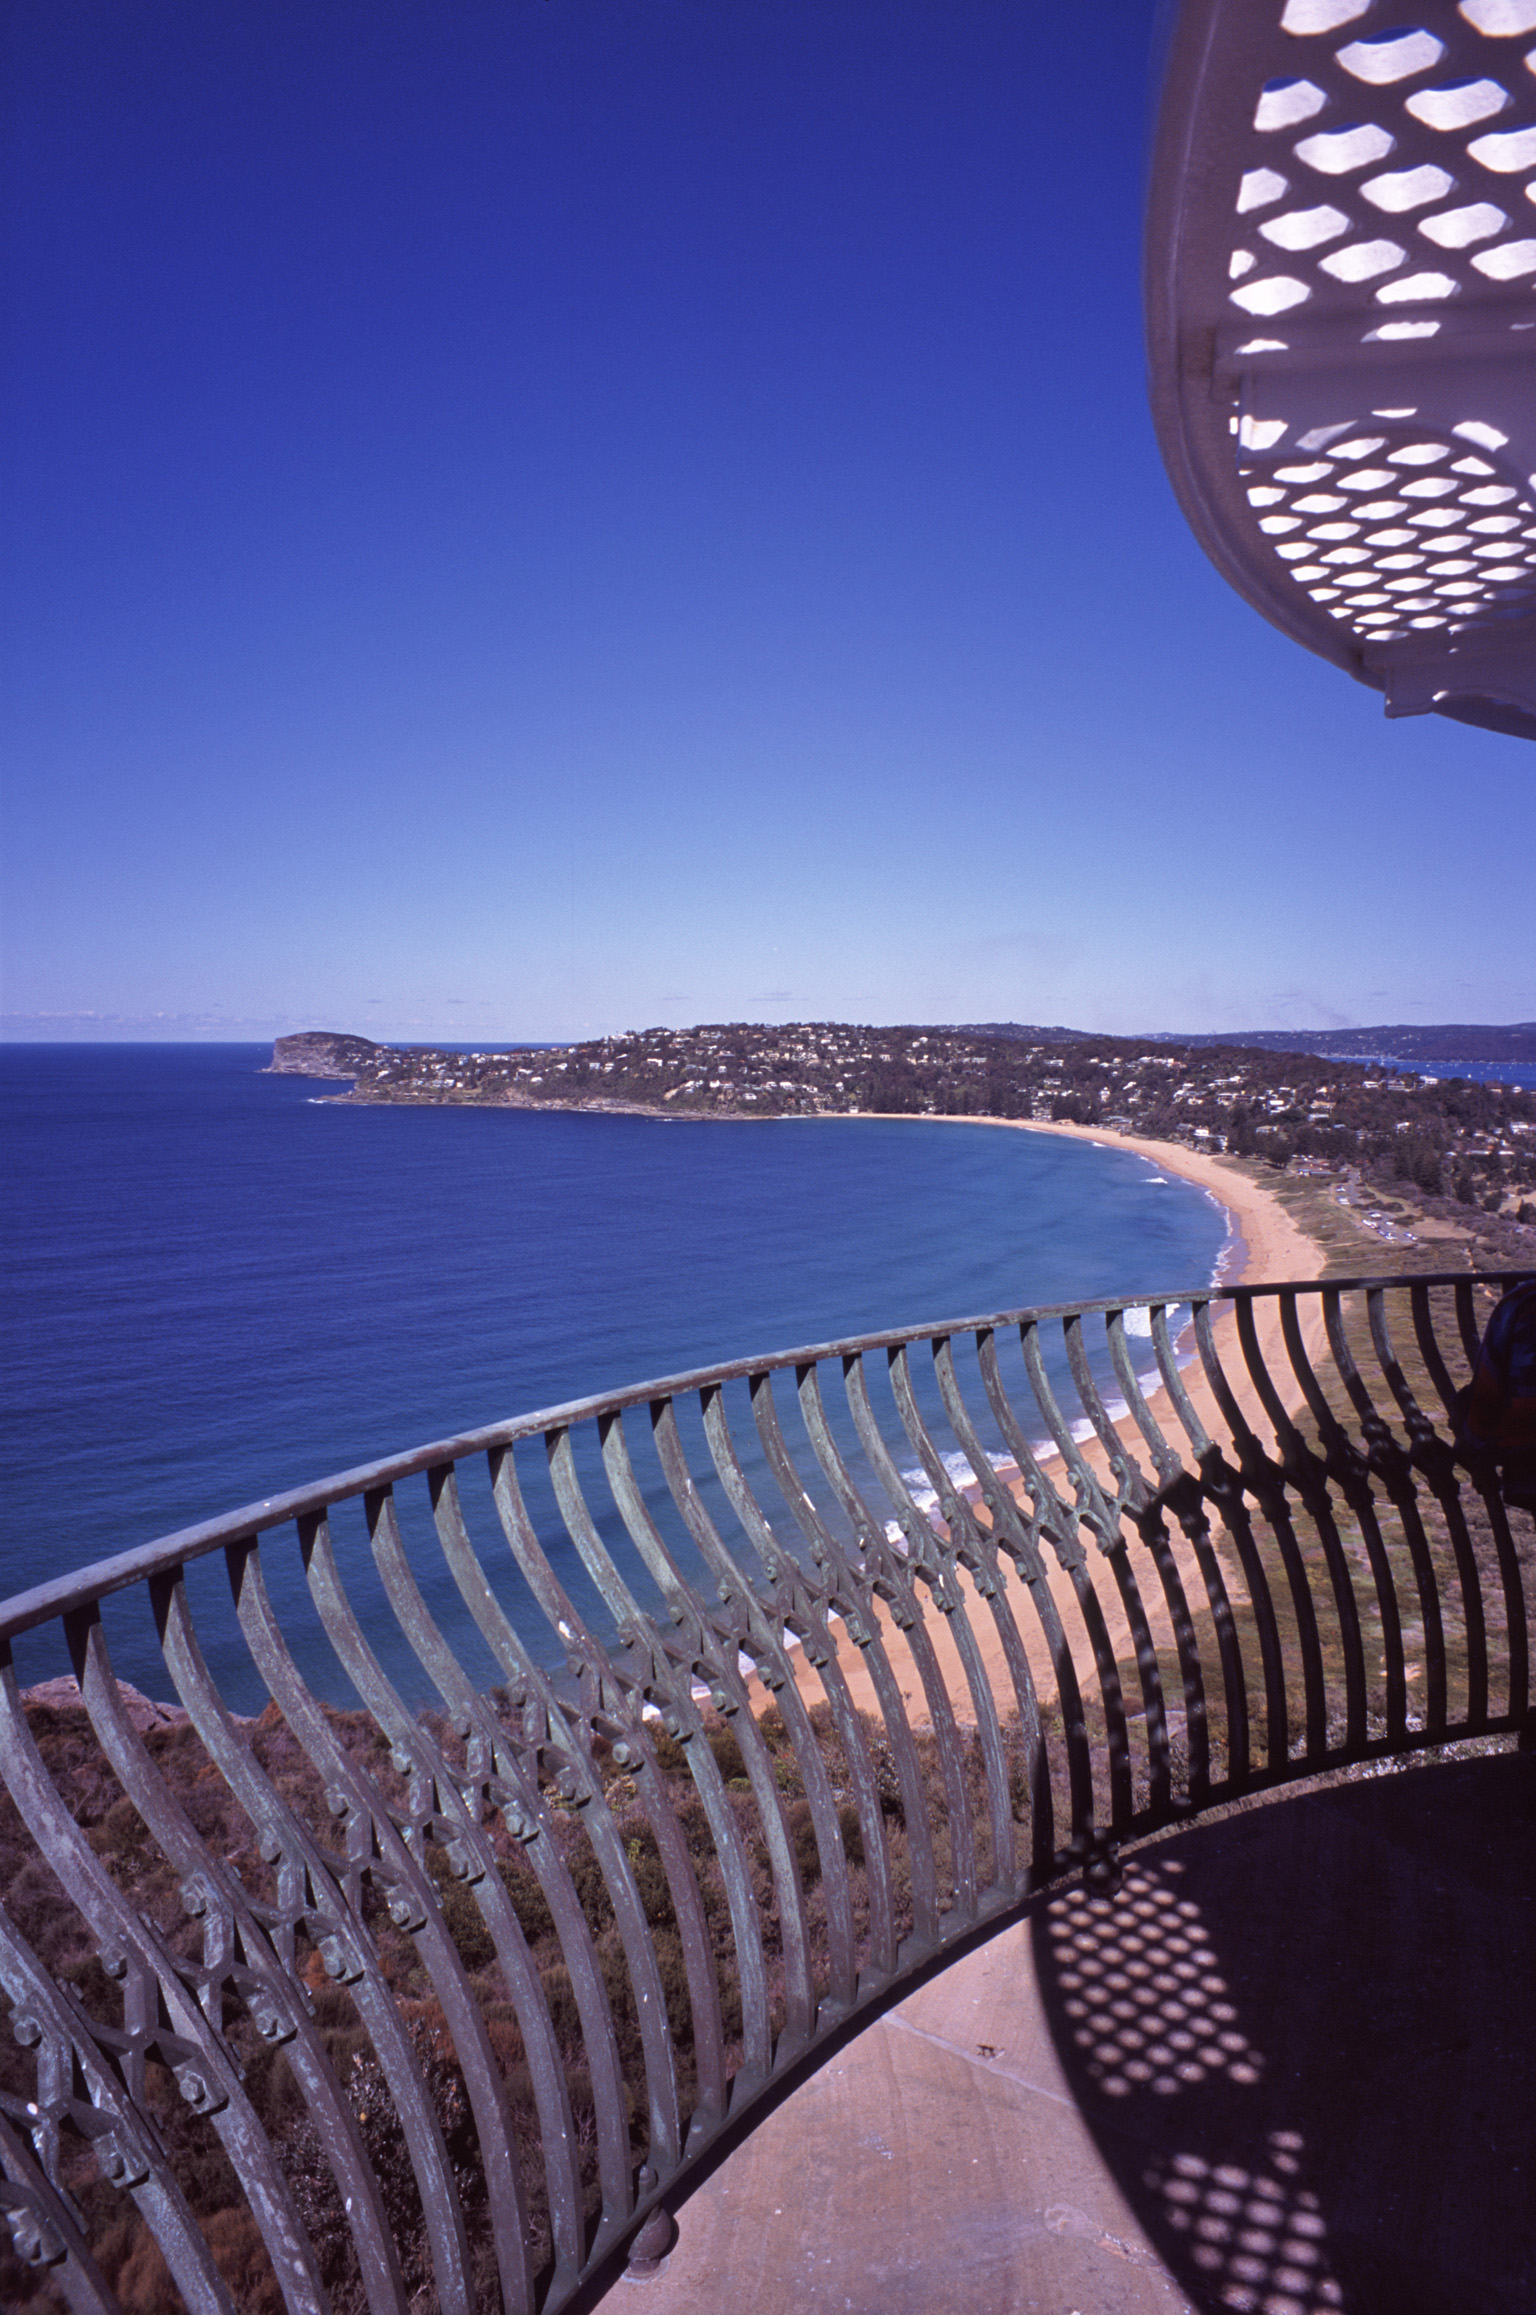 View of Palm Beach from Balcony, Barrenjoey, New South Wales